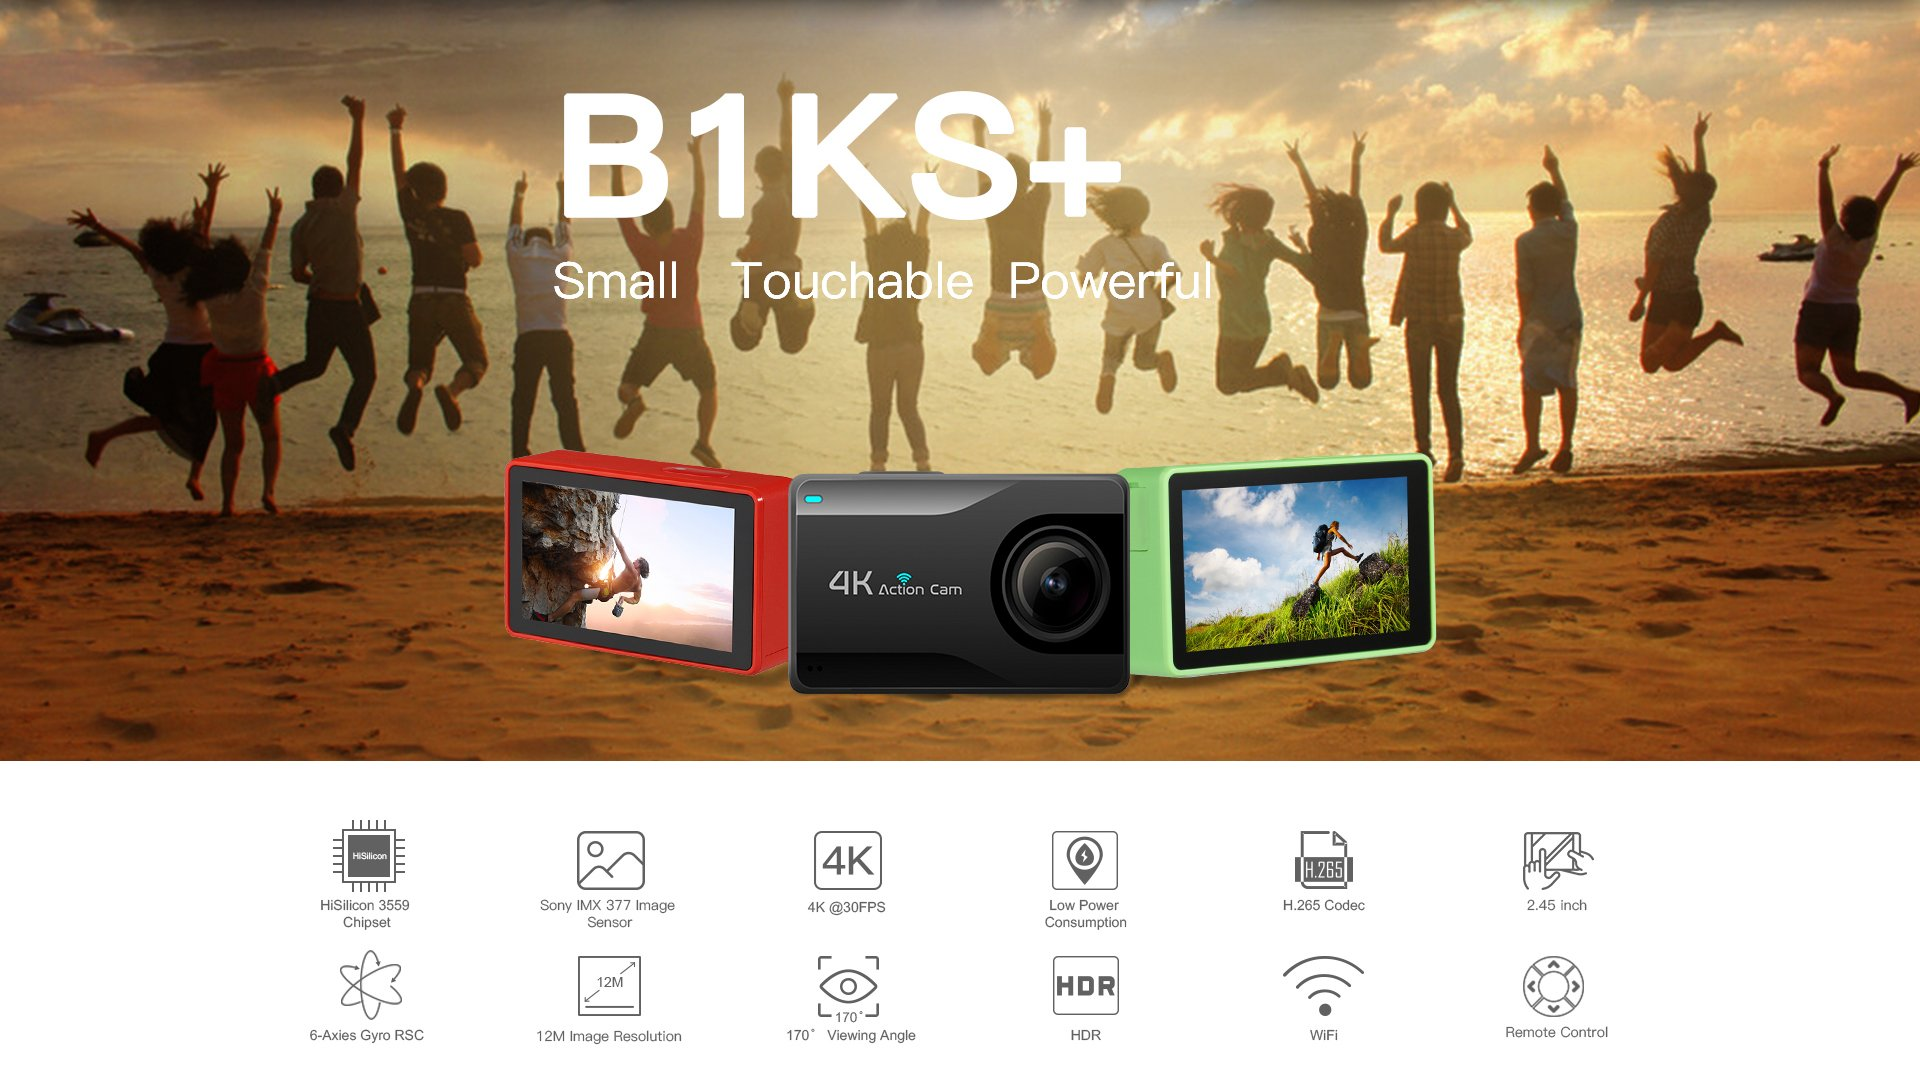 B1KS+ HiSilicion 4K Action Camera Small Touchable Powerful